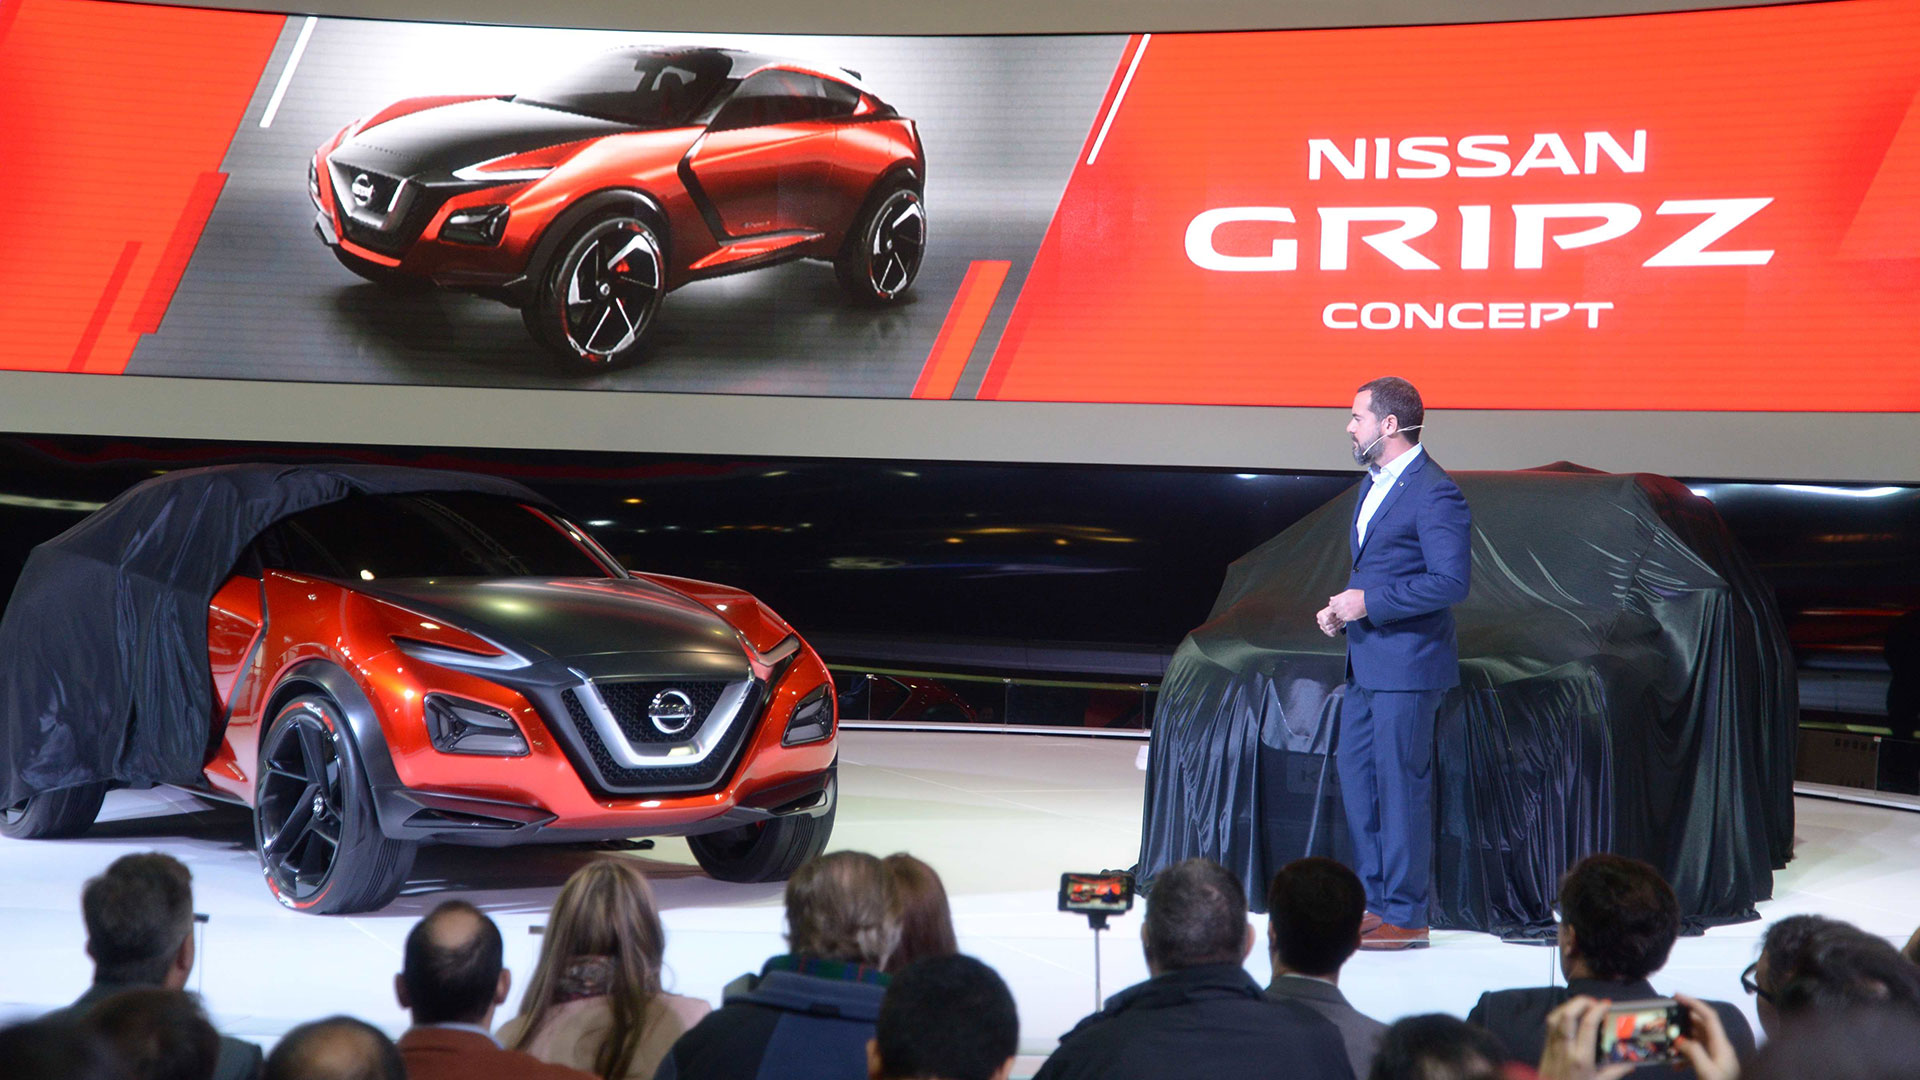 El Director General develó al Nissan Gripz Concept